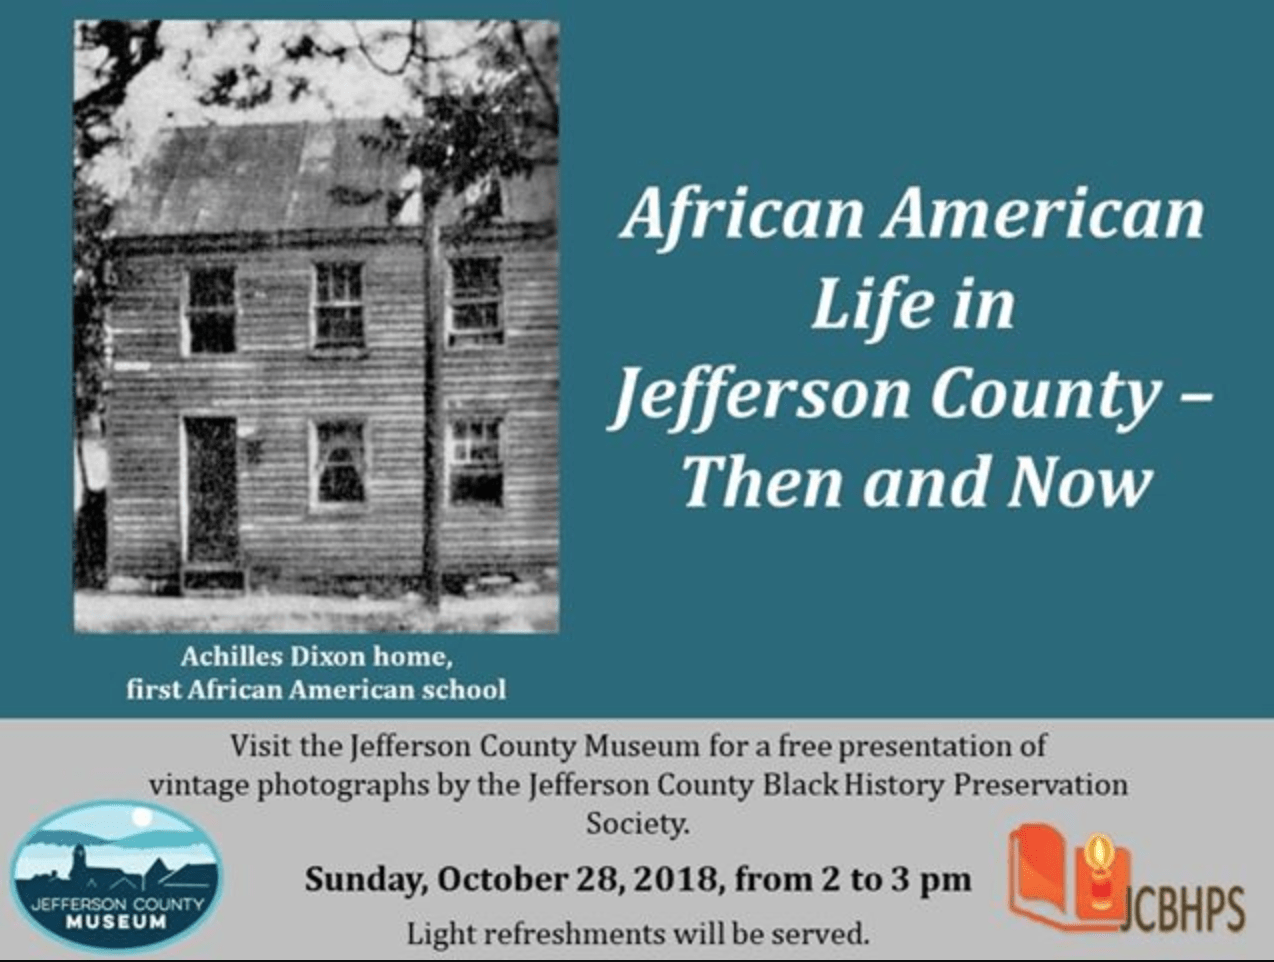 African American Life in Jefferson County—Then and Now